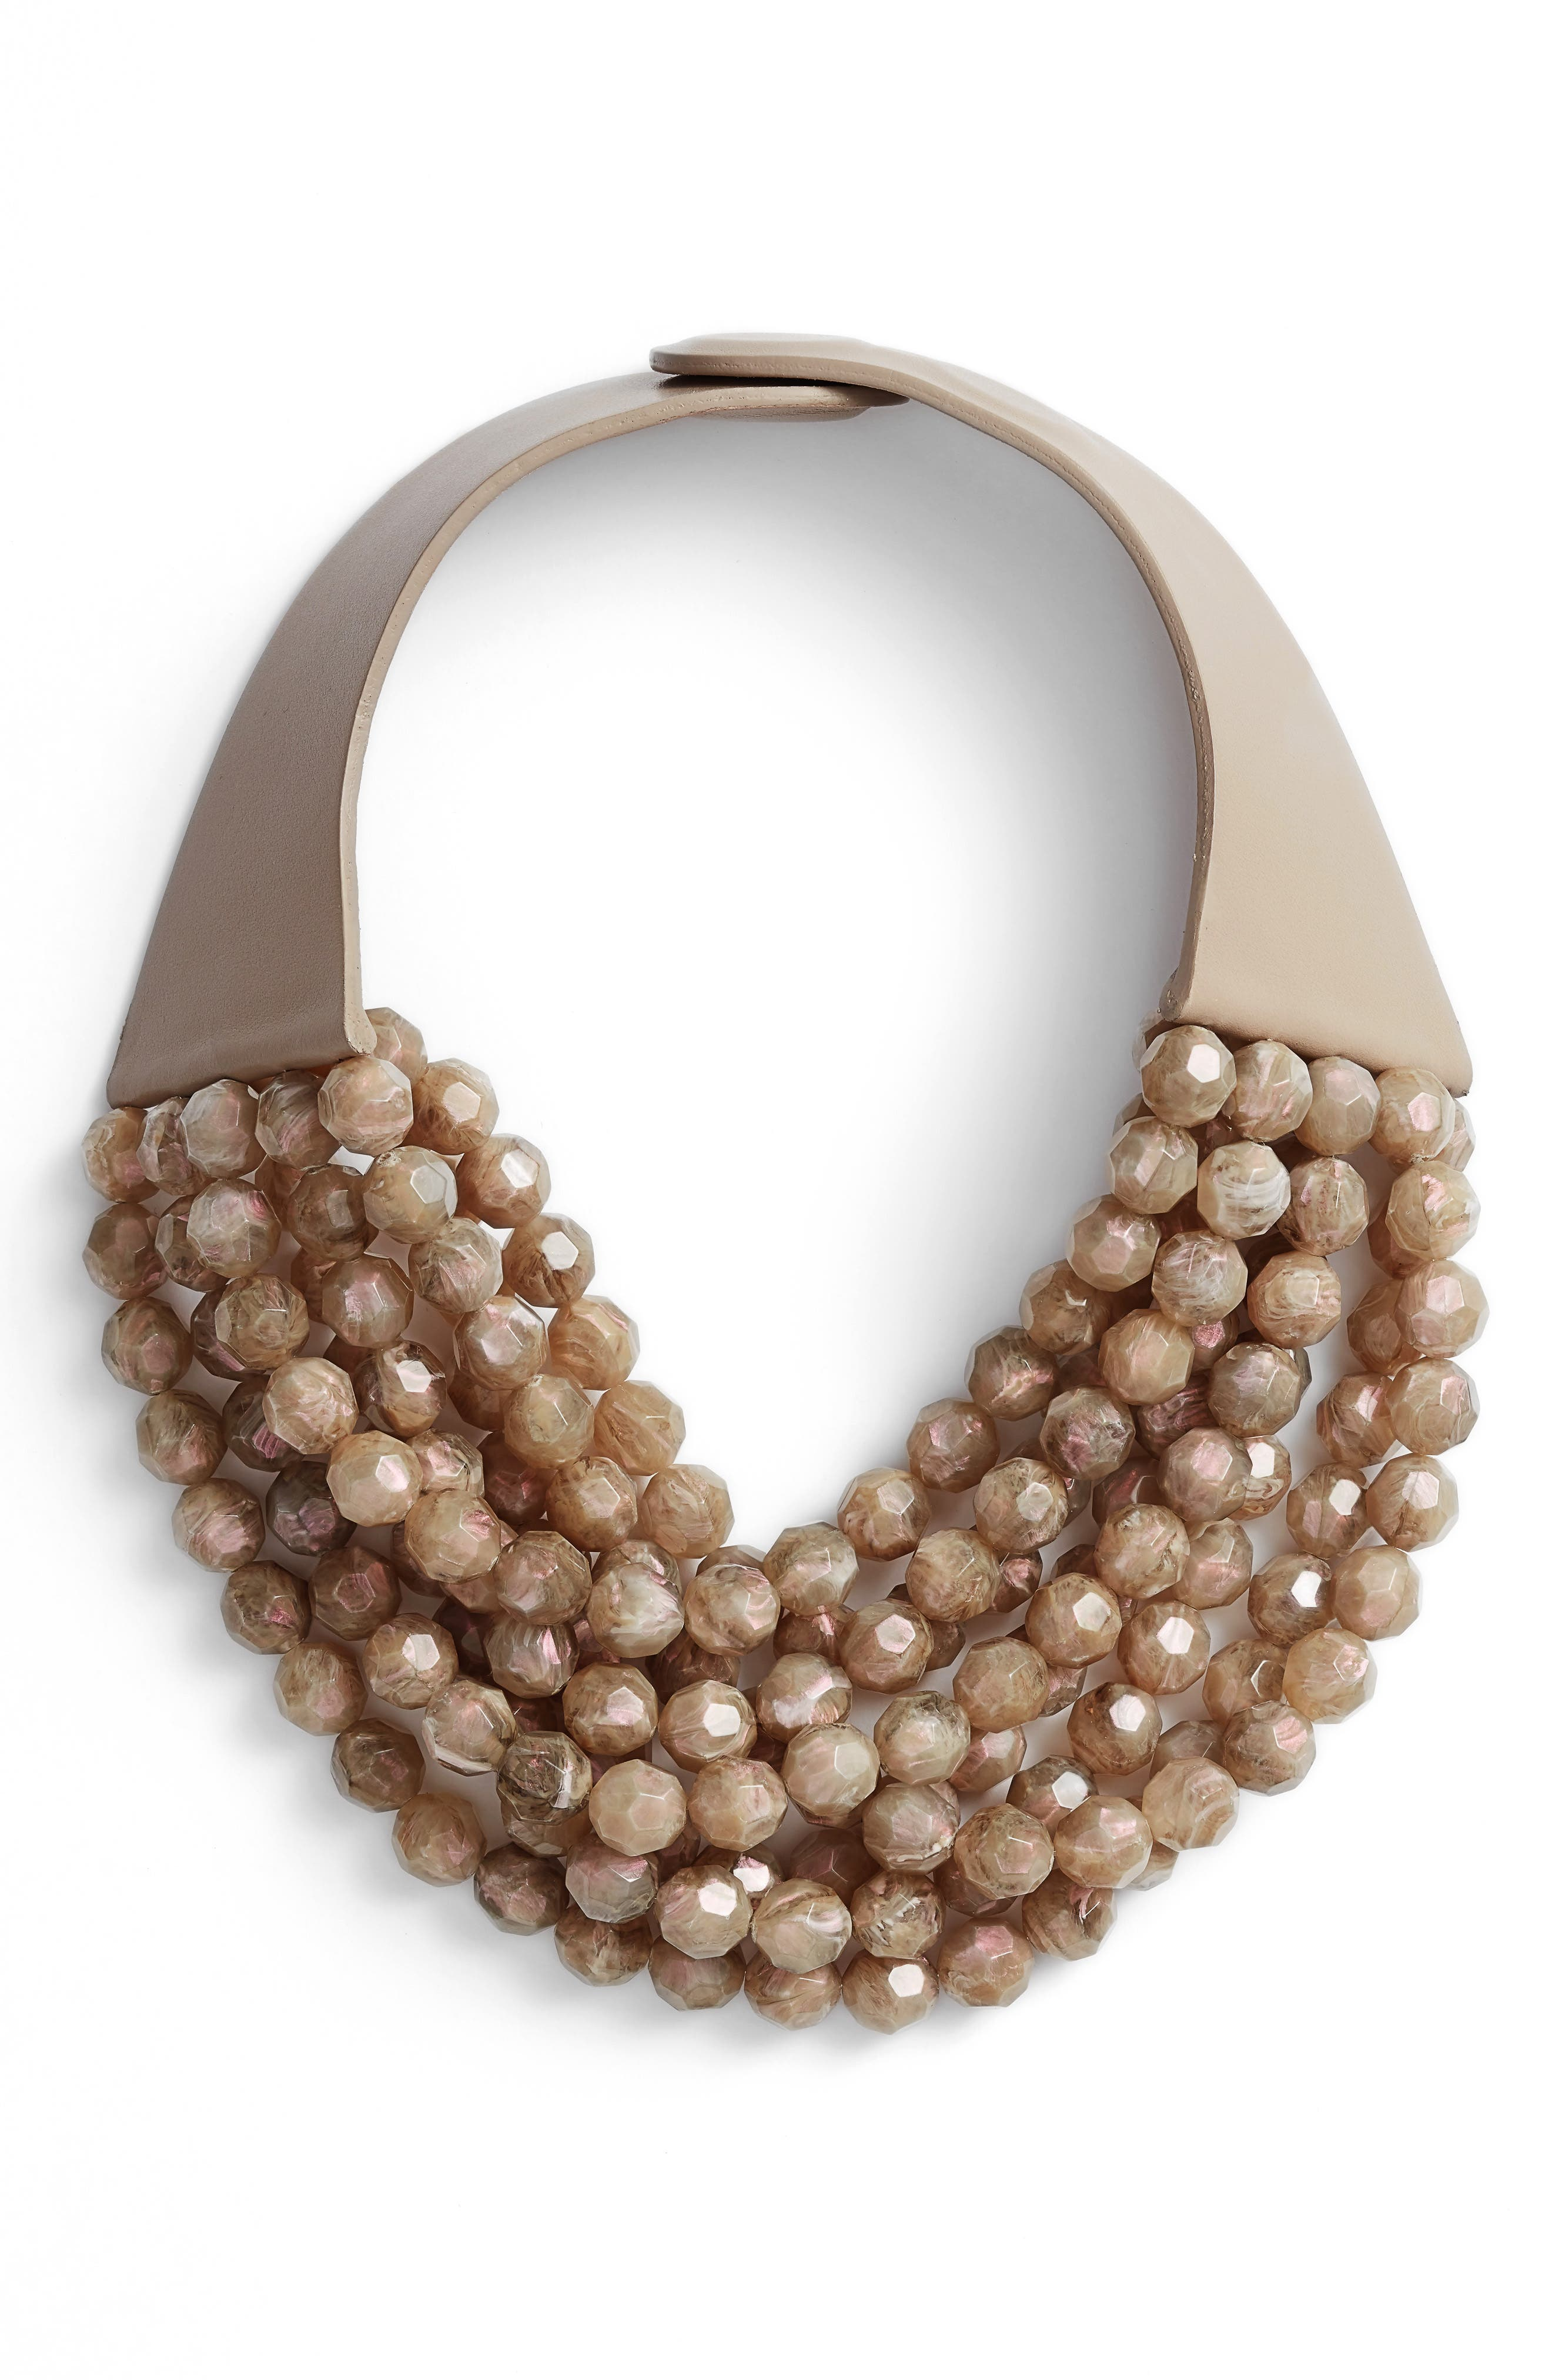 Beaded Collar Necklace,                         Main,                         color, Iridescent Mushroom/ Taupe